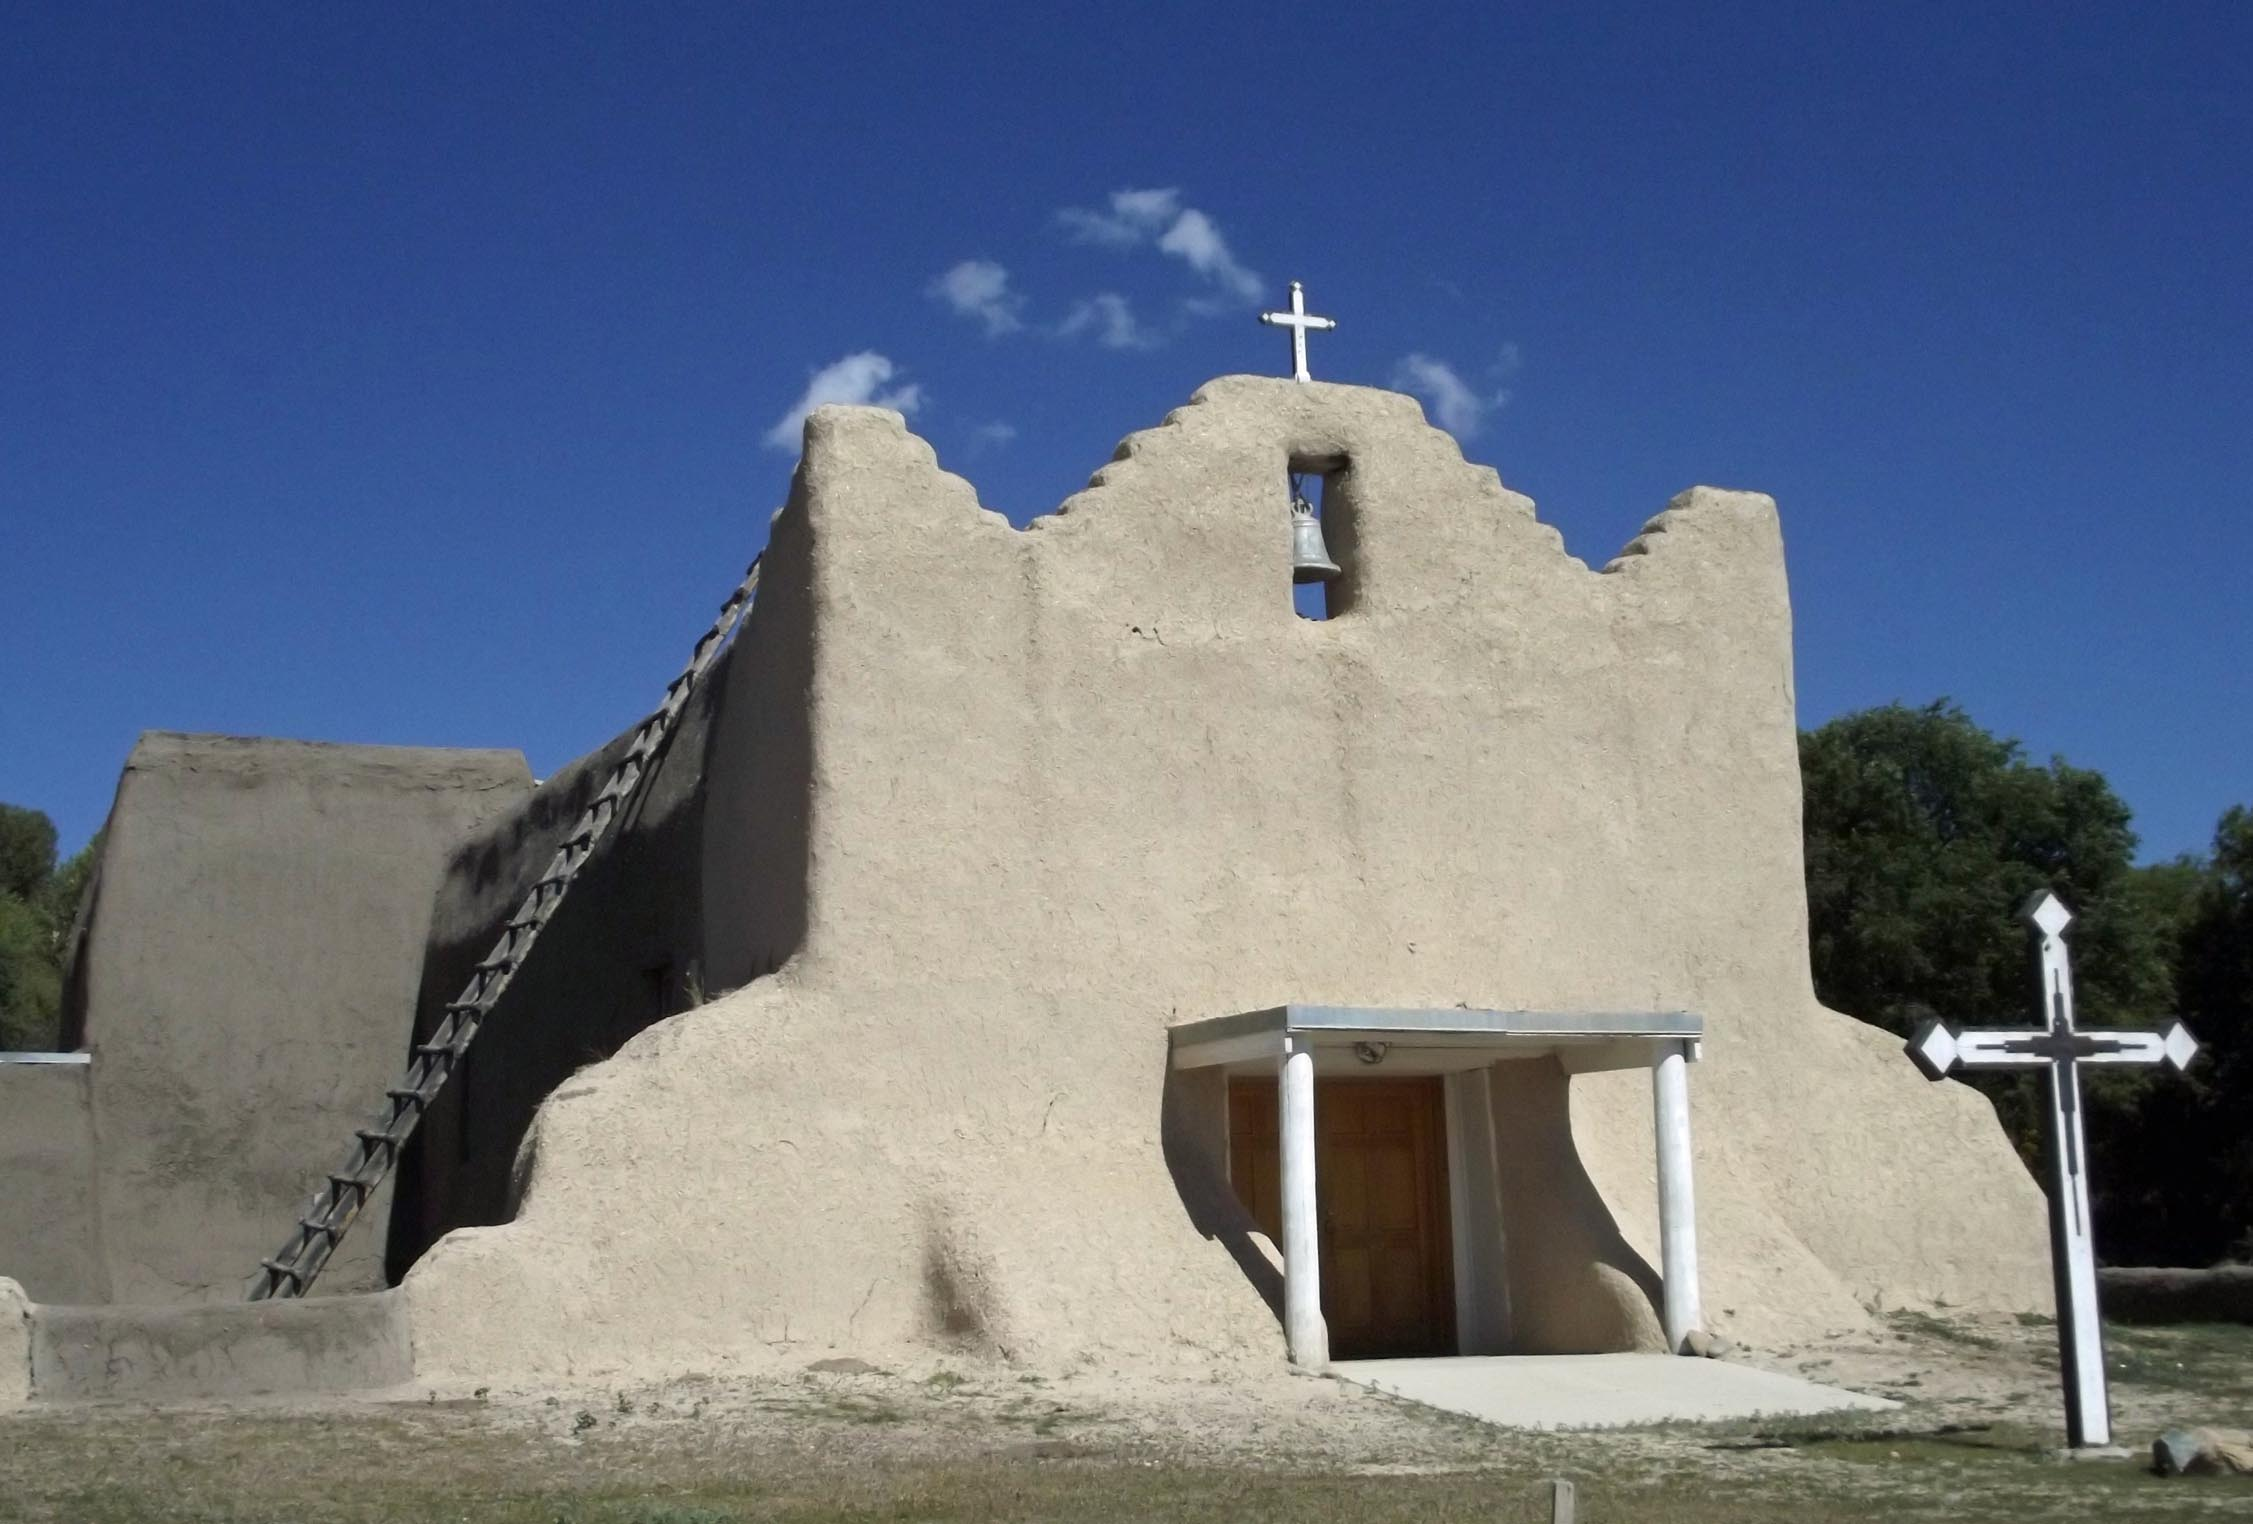 Adobe church with white cross in front